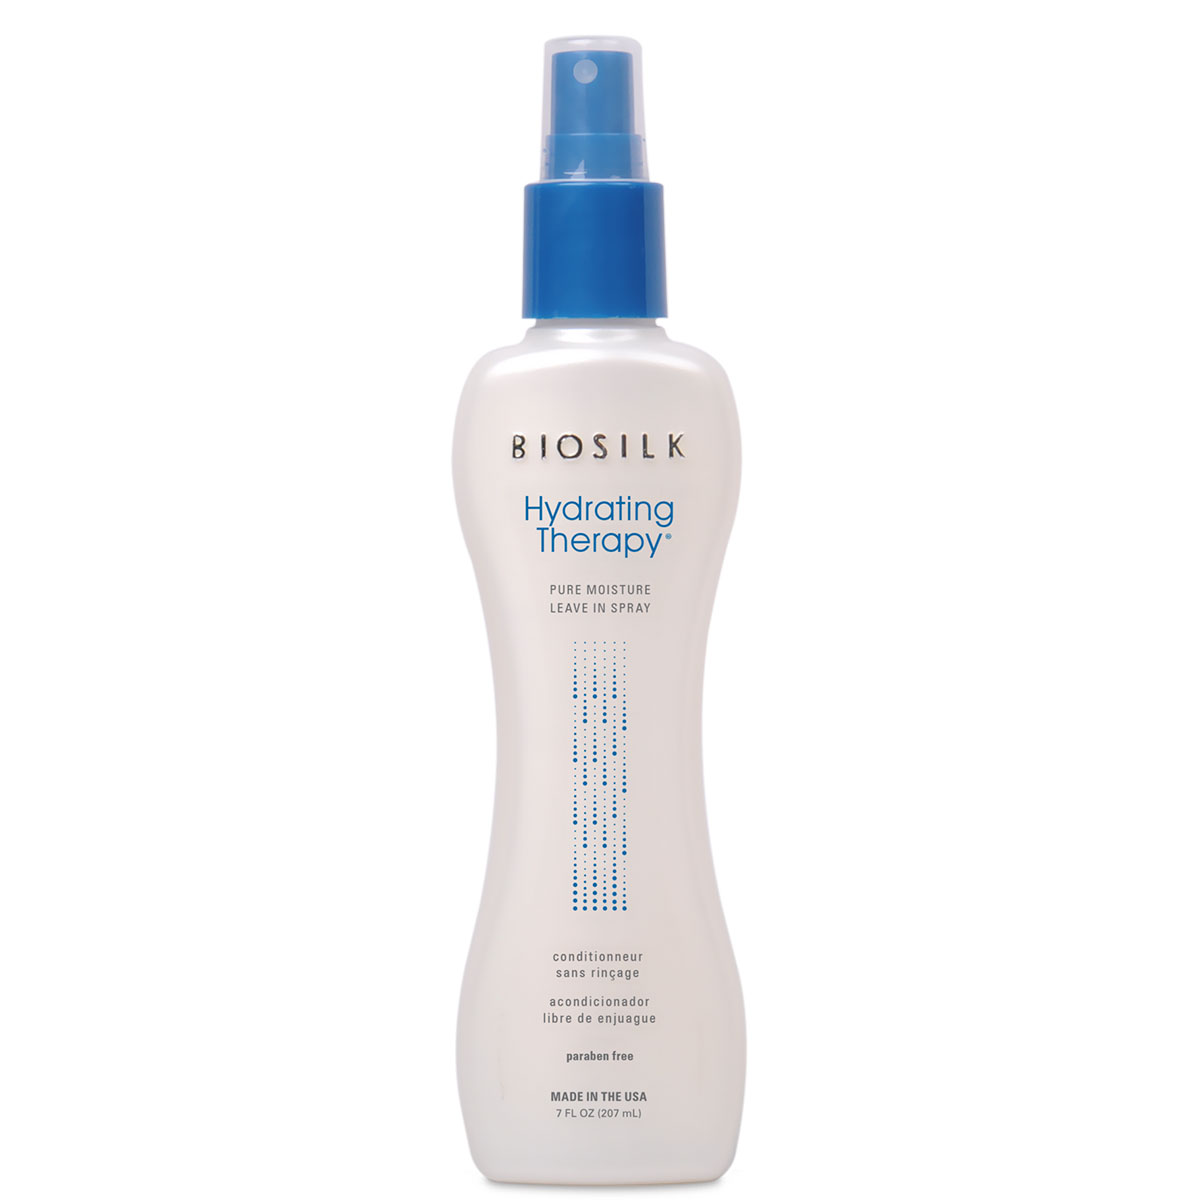 BioSilk Hydrating Therapy Leave-In Spray 7 fl.oz. - BioSilk Haircare - BioSilk Hydrating Therapy